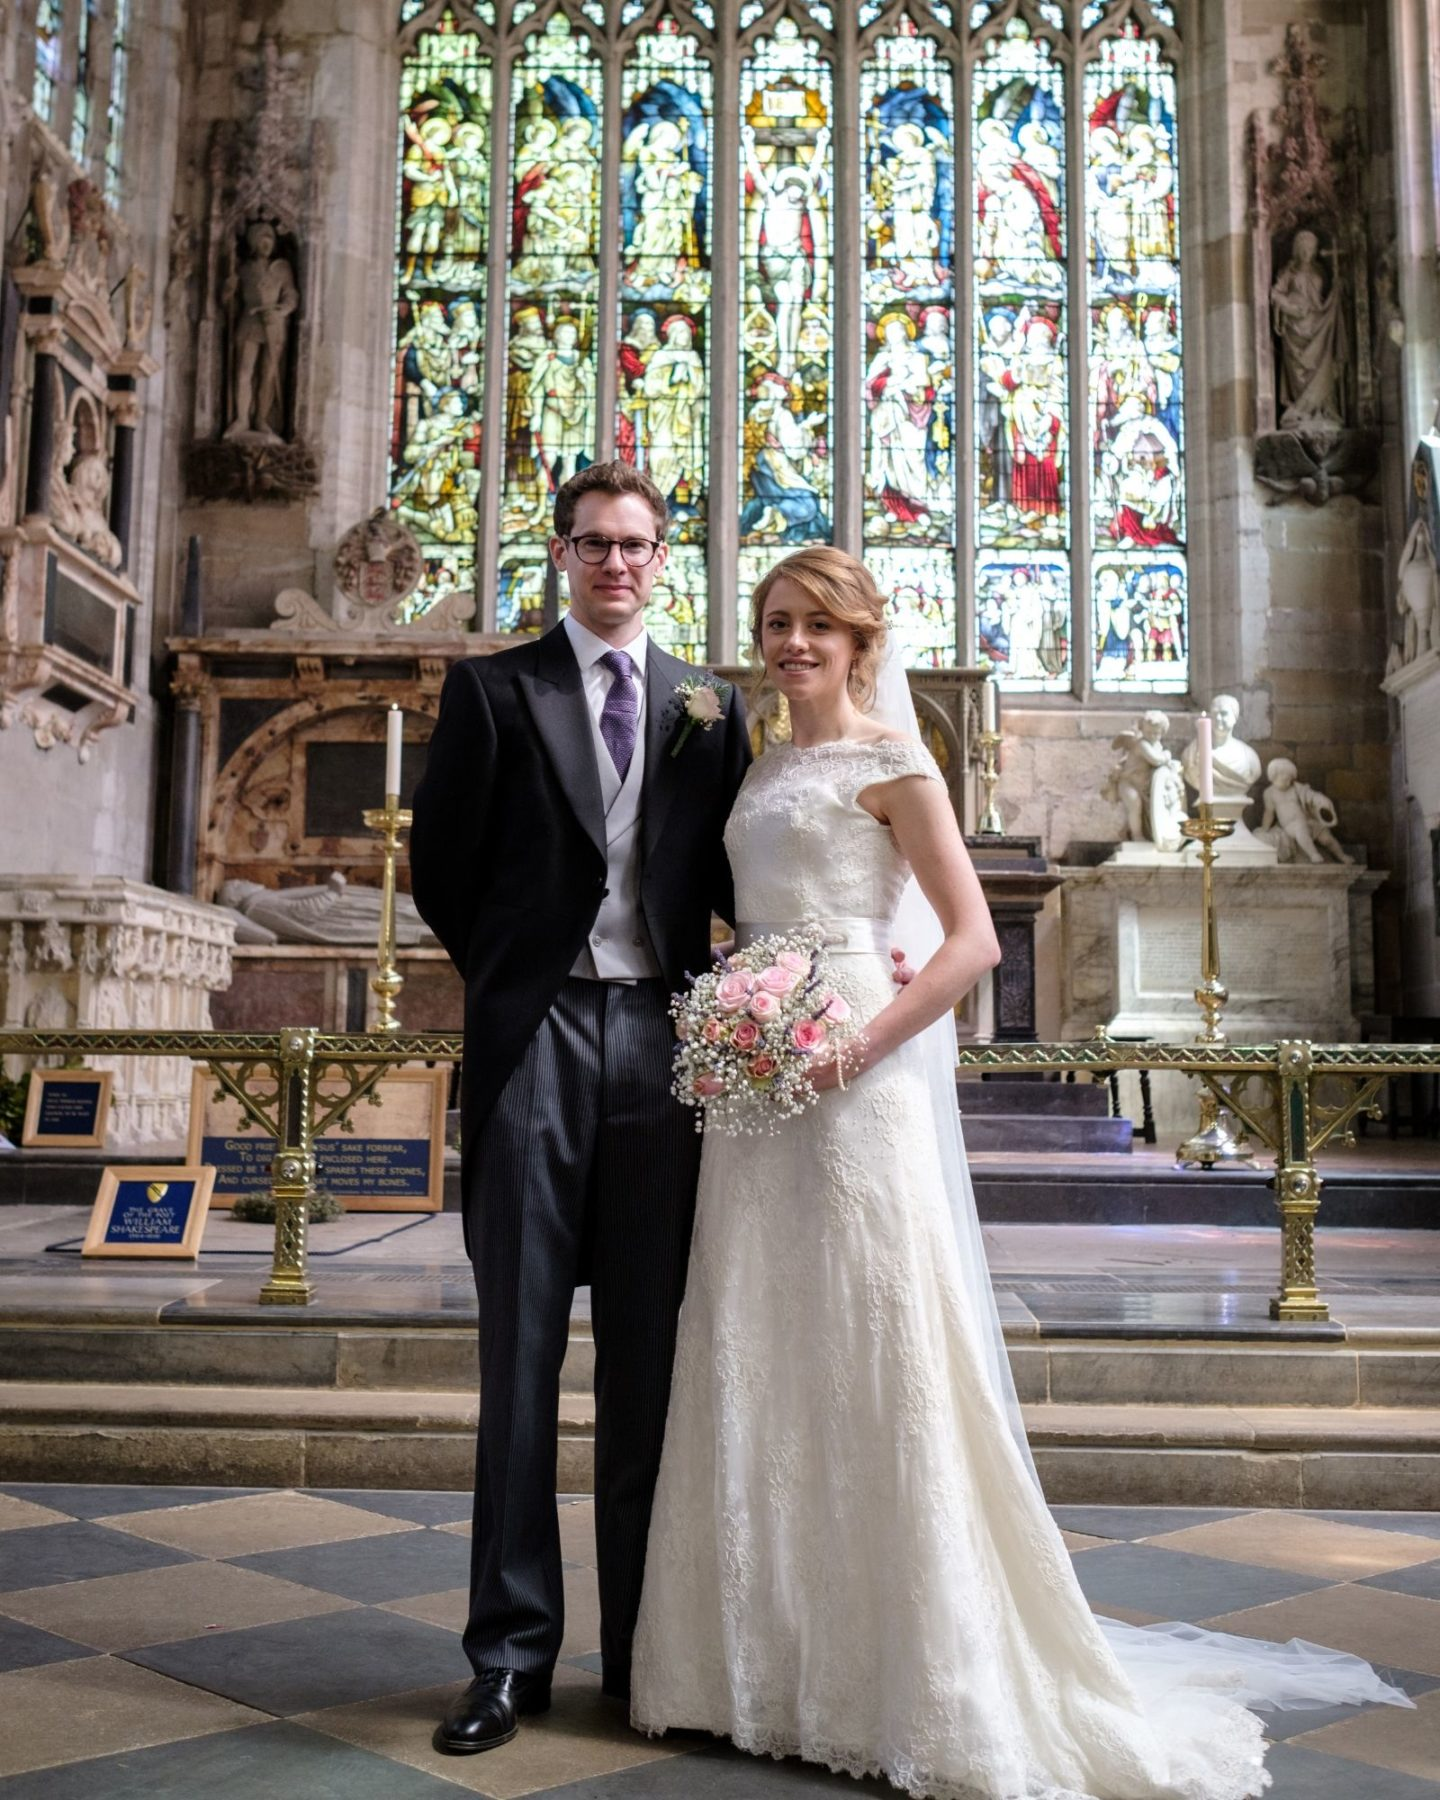 Married couple Harriet and Nick at traditional church wedding ceremony